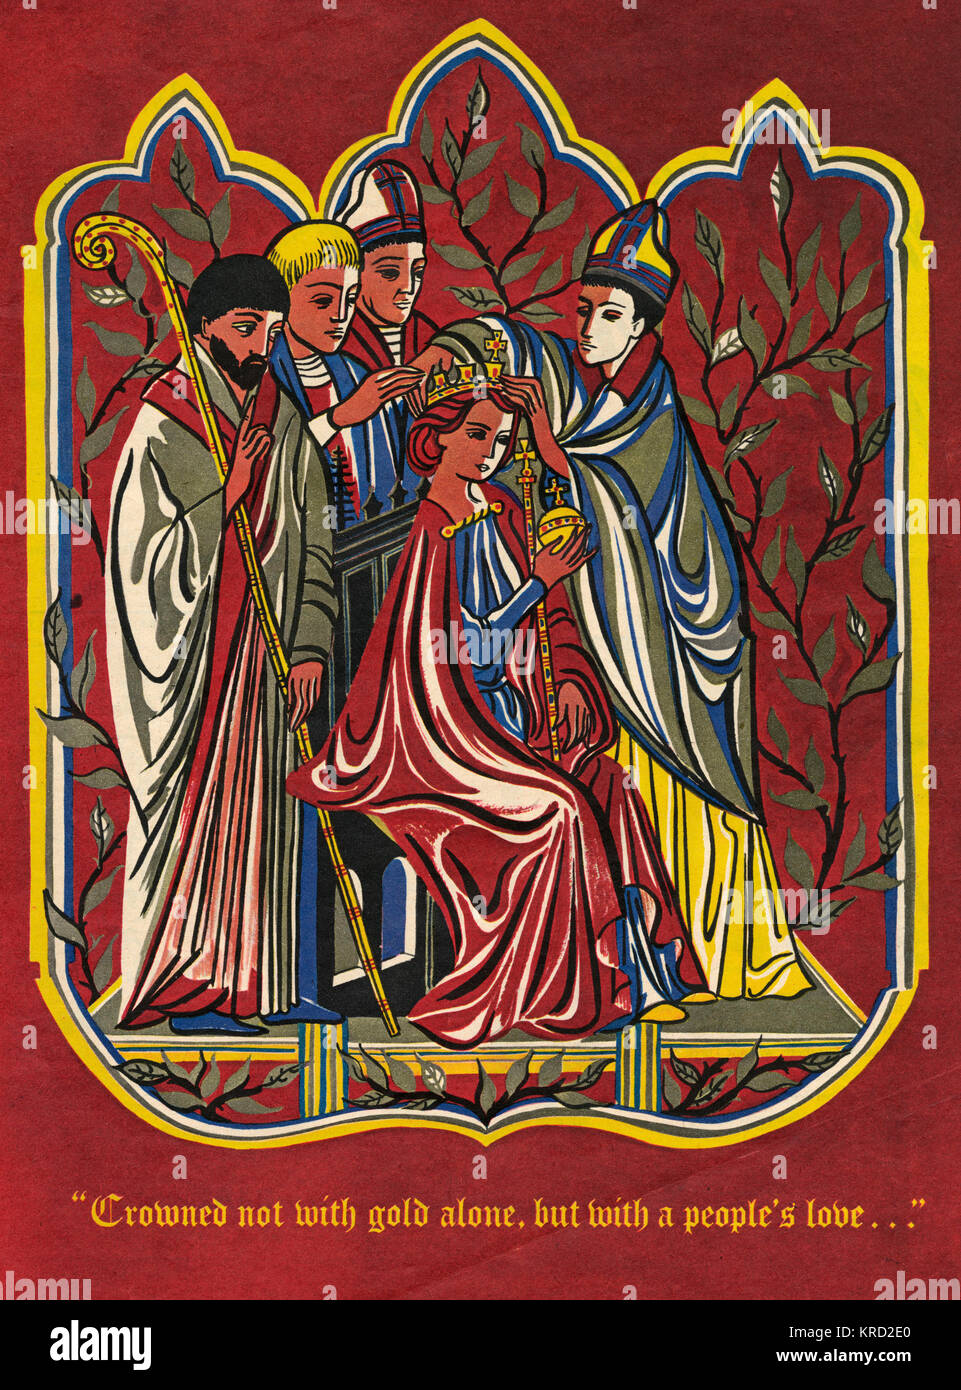 A medieval style illustration showing a Queen being crowned by an archbishop, surrounded by other religious leaders, - Stock Image